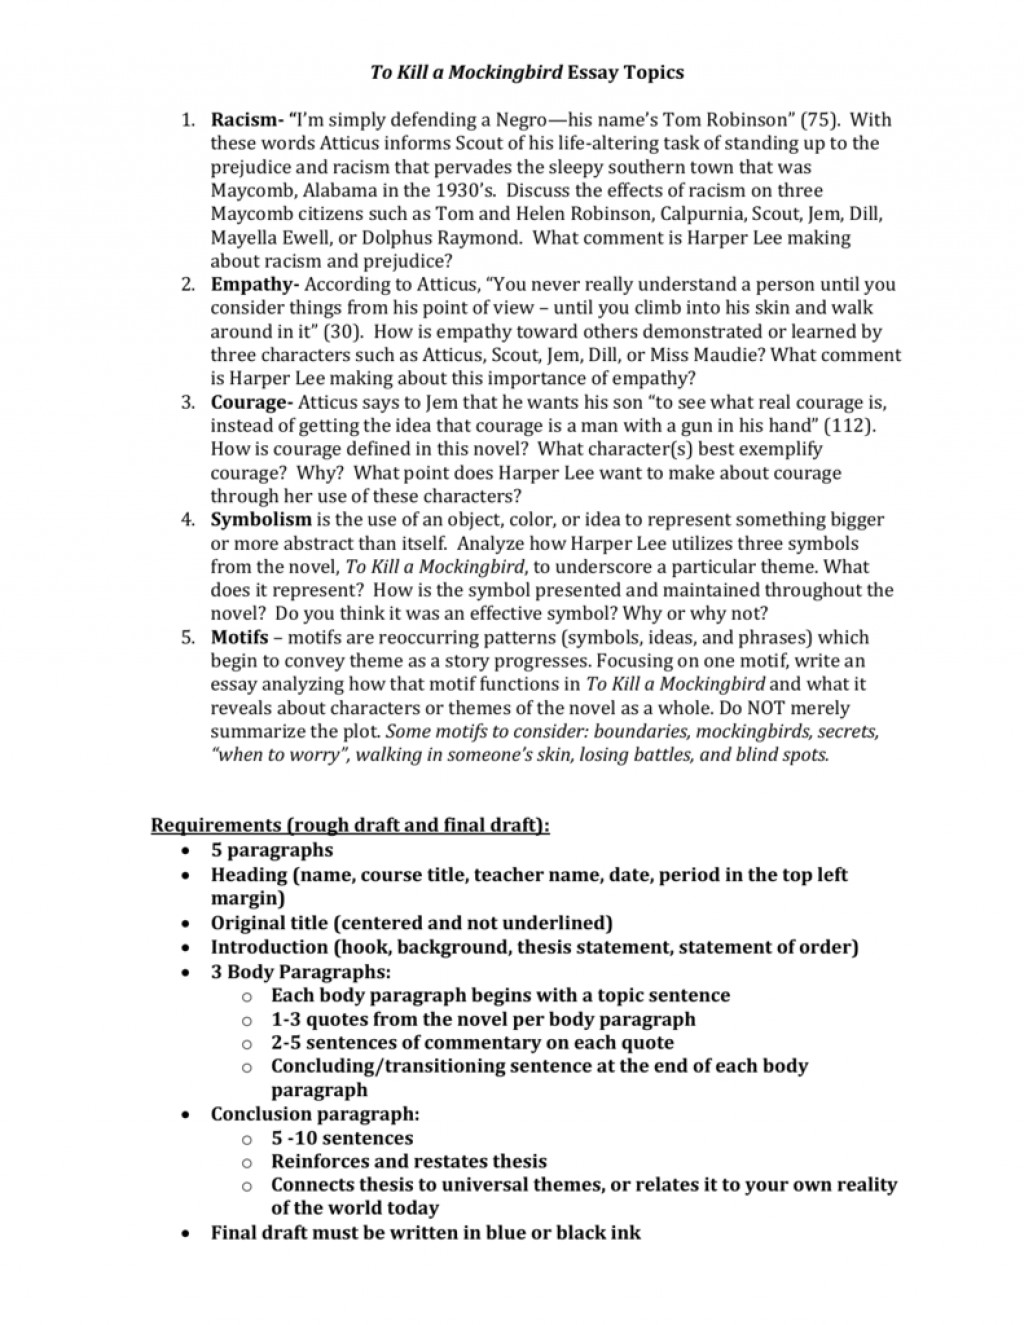 004 008003557 1 To Kill Mockingbird Essay Topics Stunning A Writing Prompts By Chapter Research Paper Pdf Large